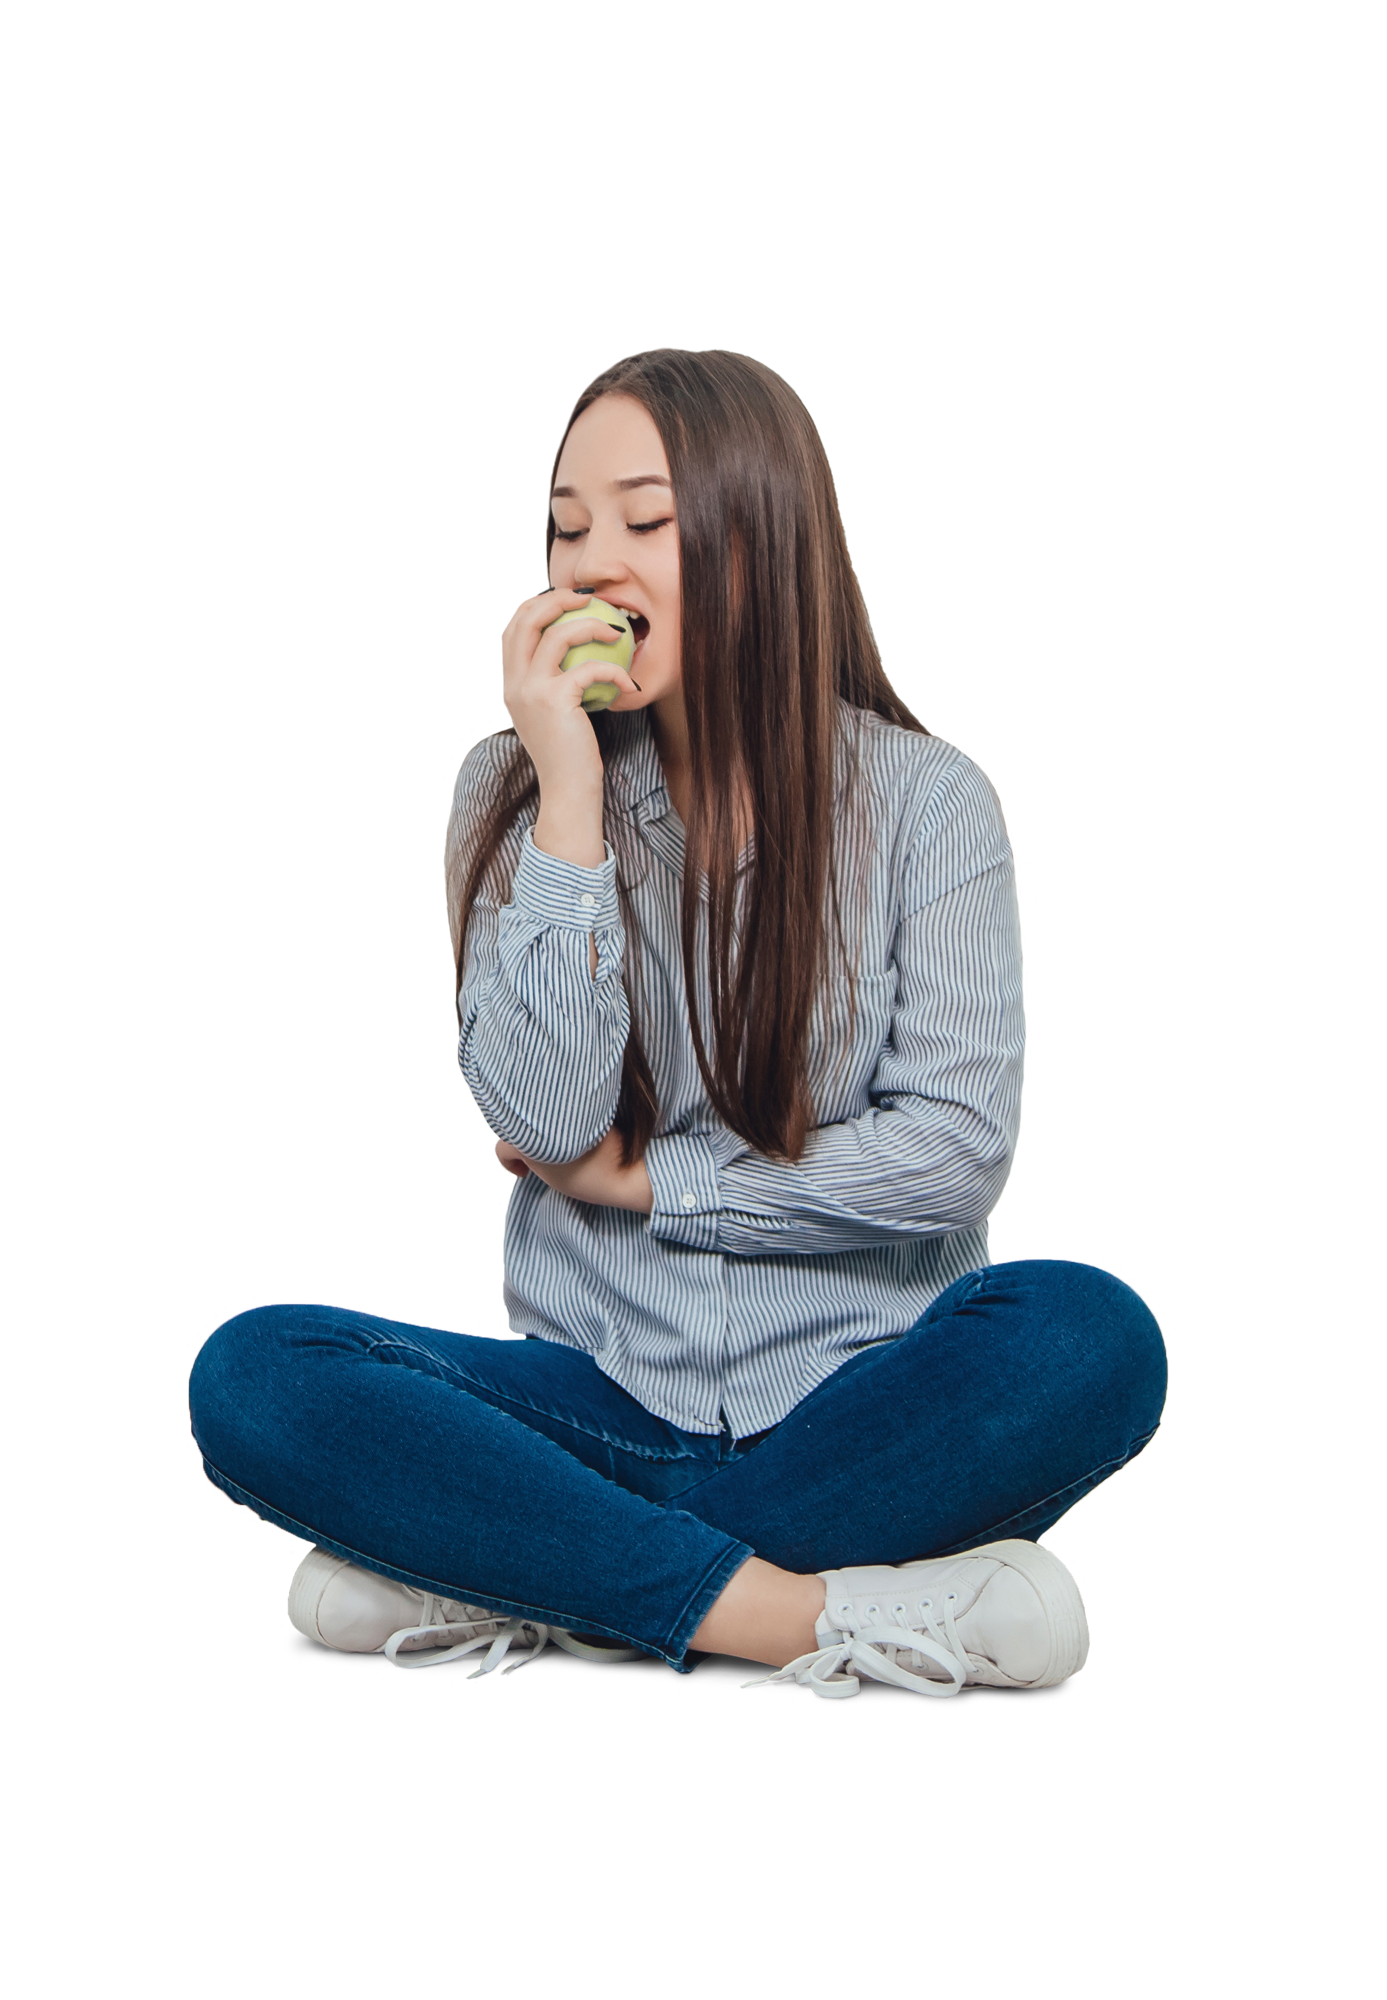 Teenage girl eating an apple